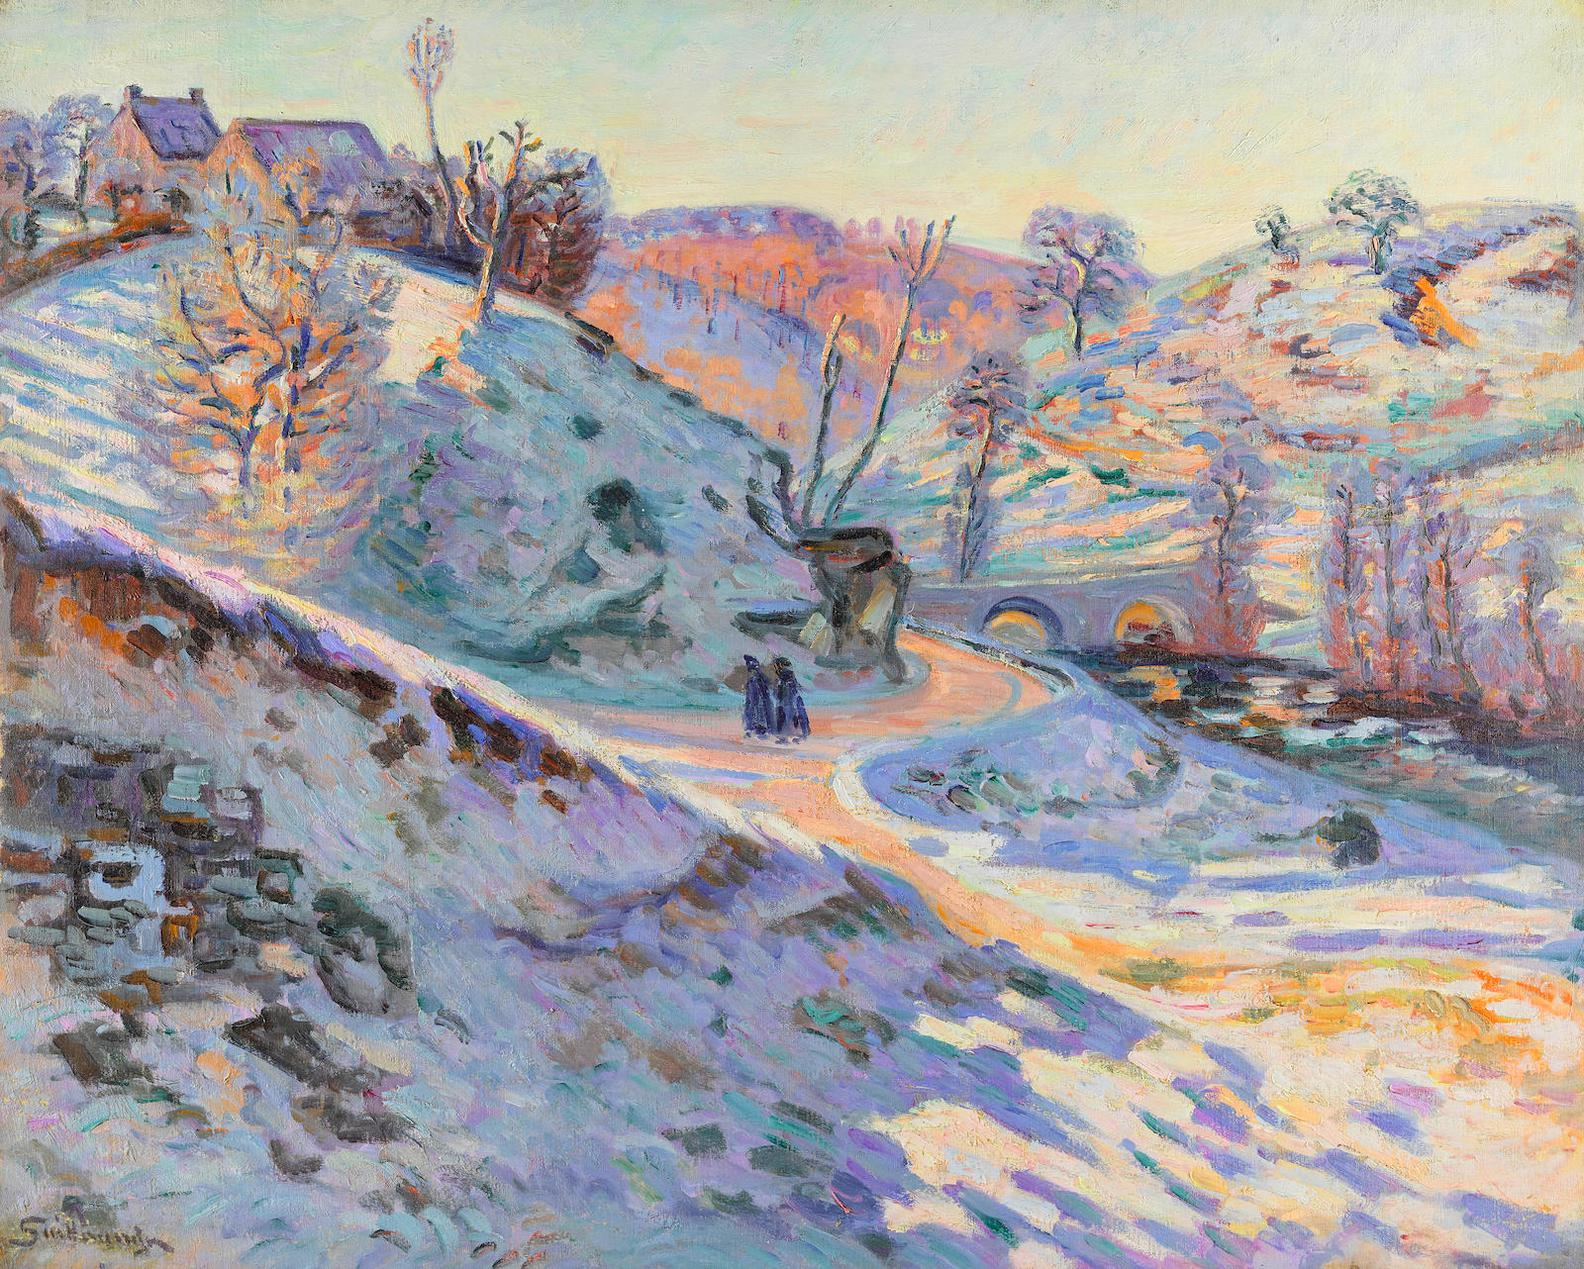 Jean-Baptiste Armand Guillaumin-Le Pont Charrant, Gelee Blanche, Crozant-1900